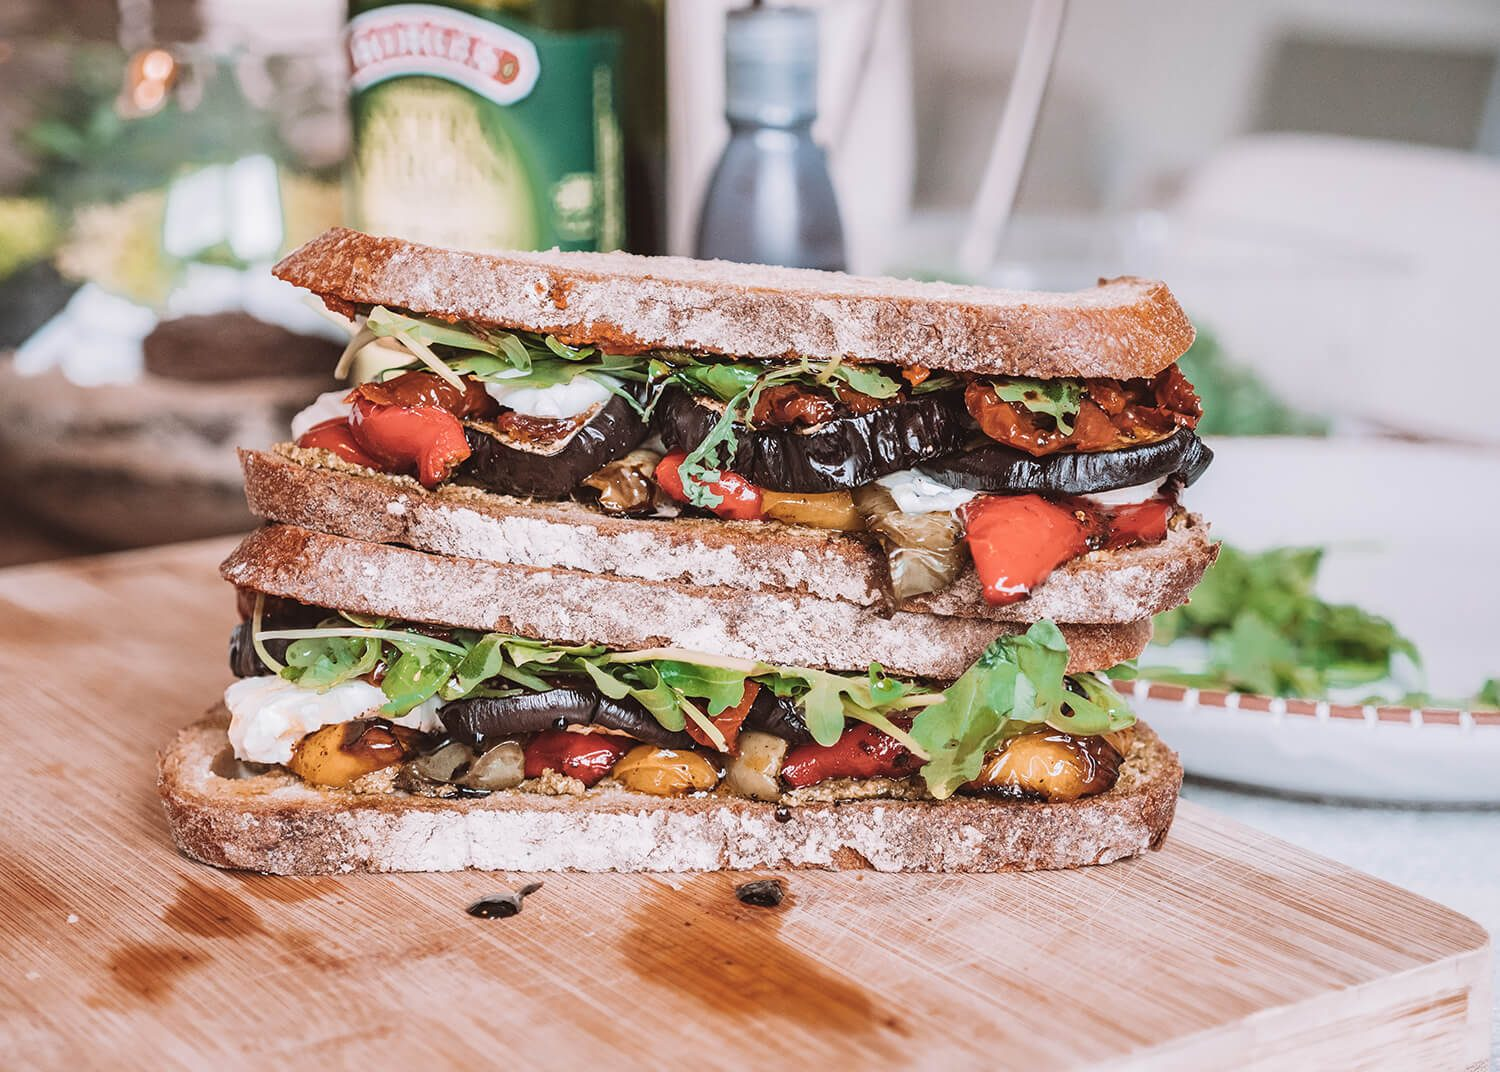 The Ultimate Roasted Veg Sandwich